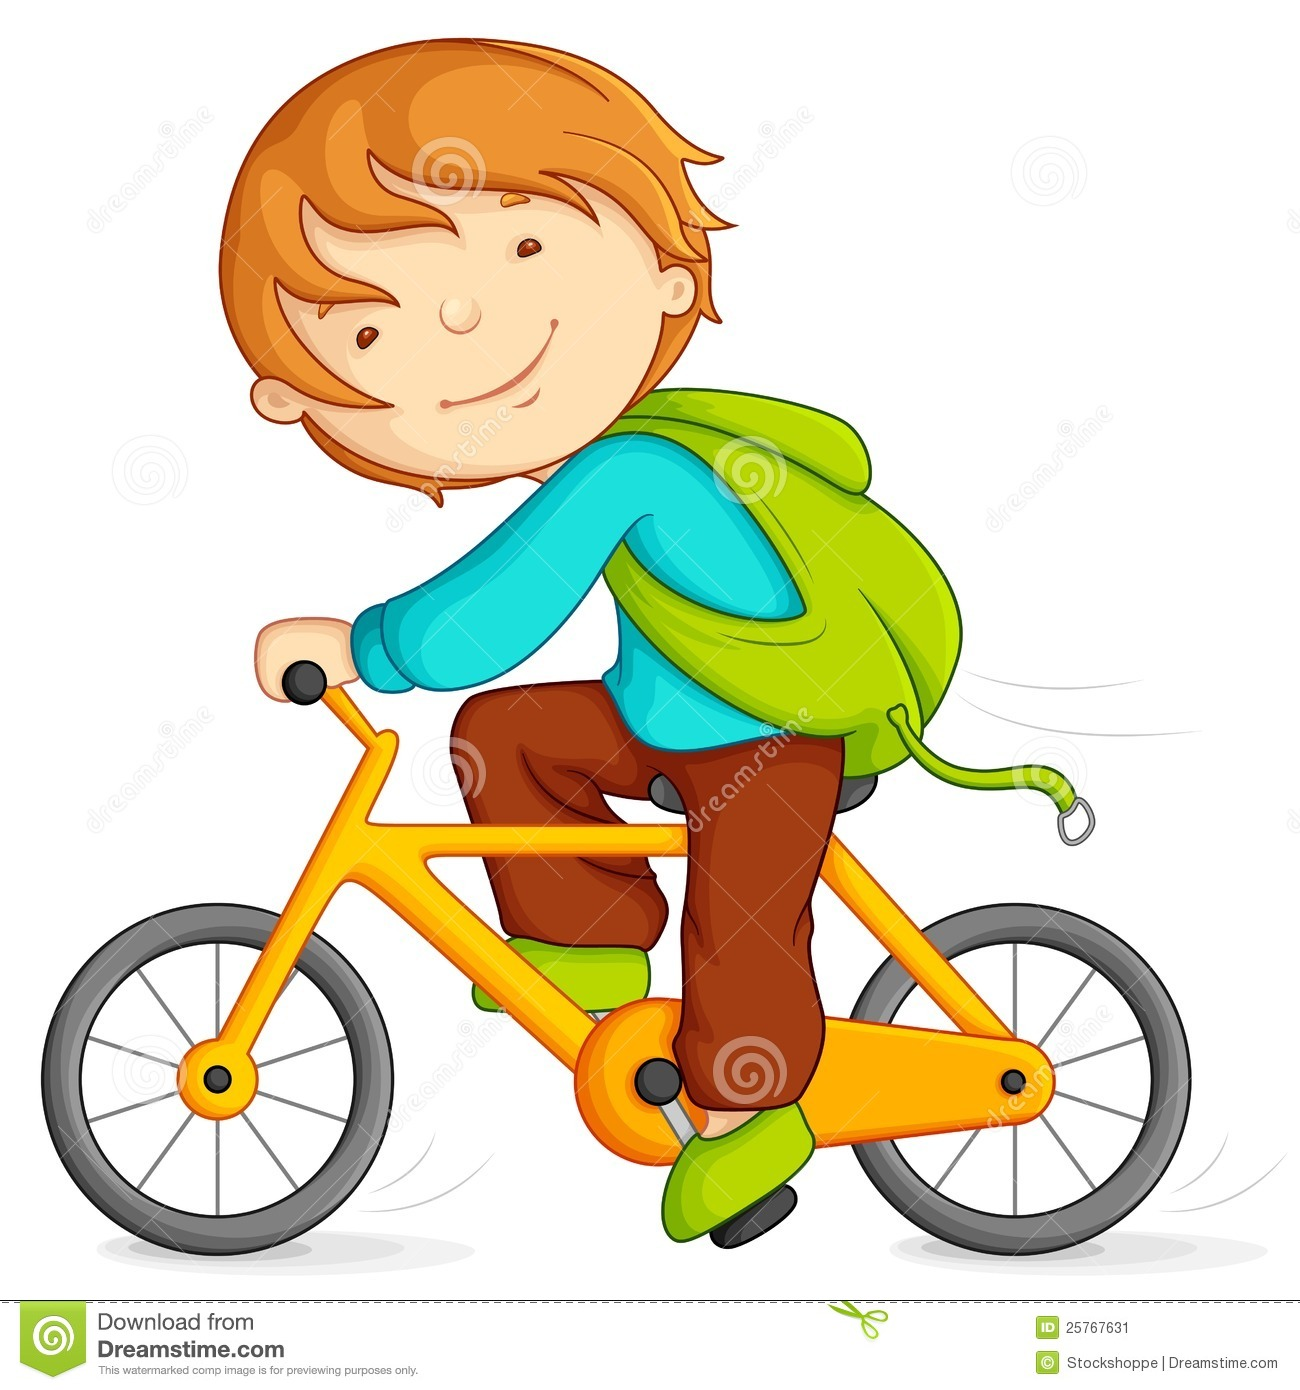 Boy cycling stock vector. Illustration of healthy, action ...